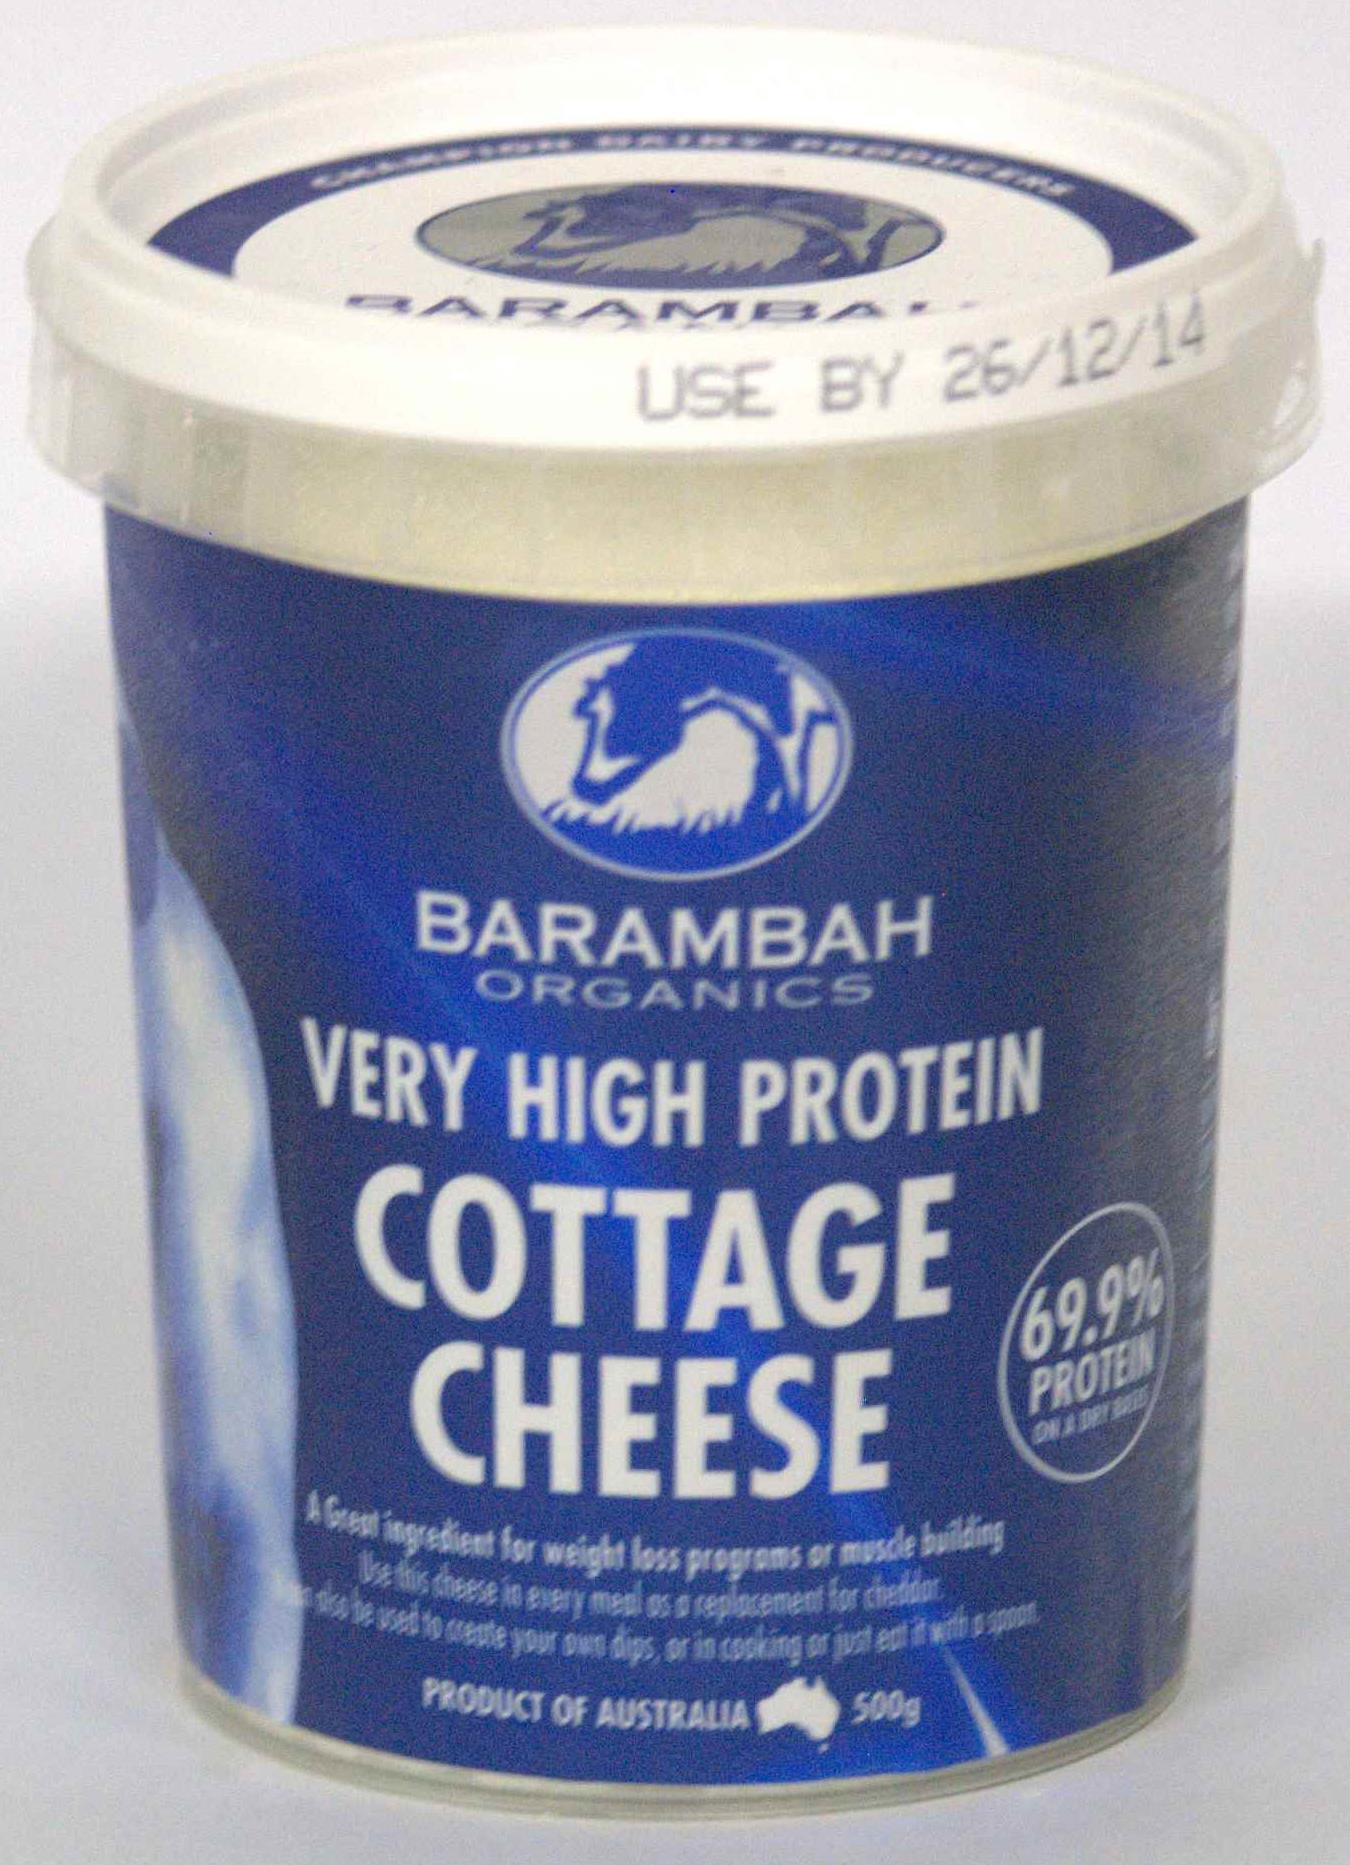 Barmbah Cottage Cheese